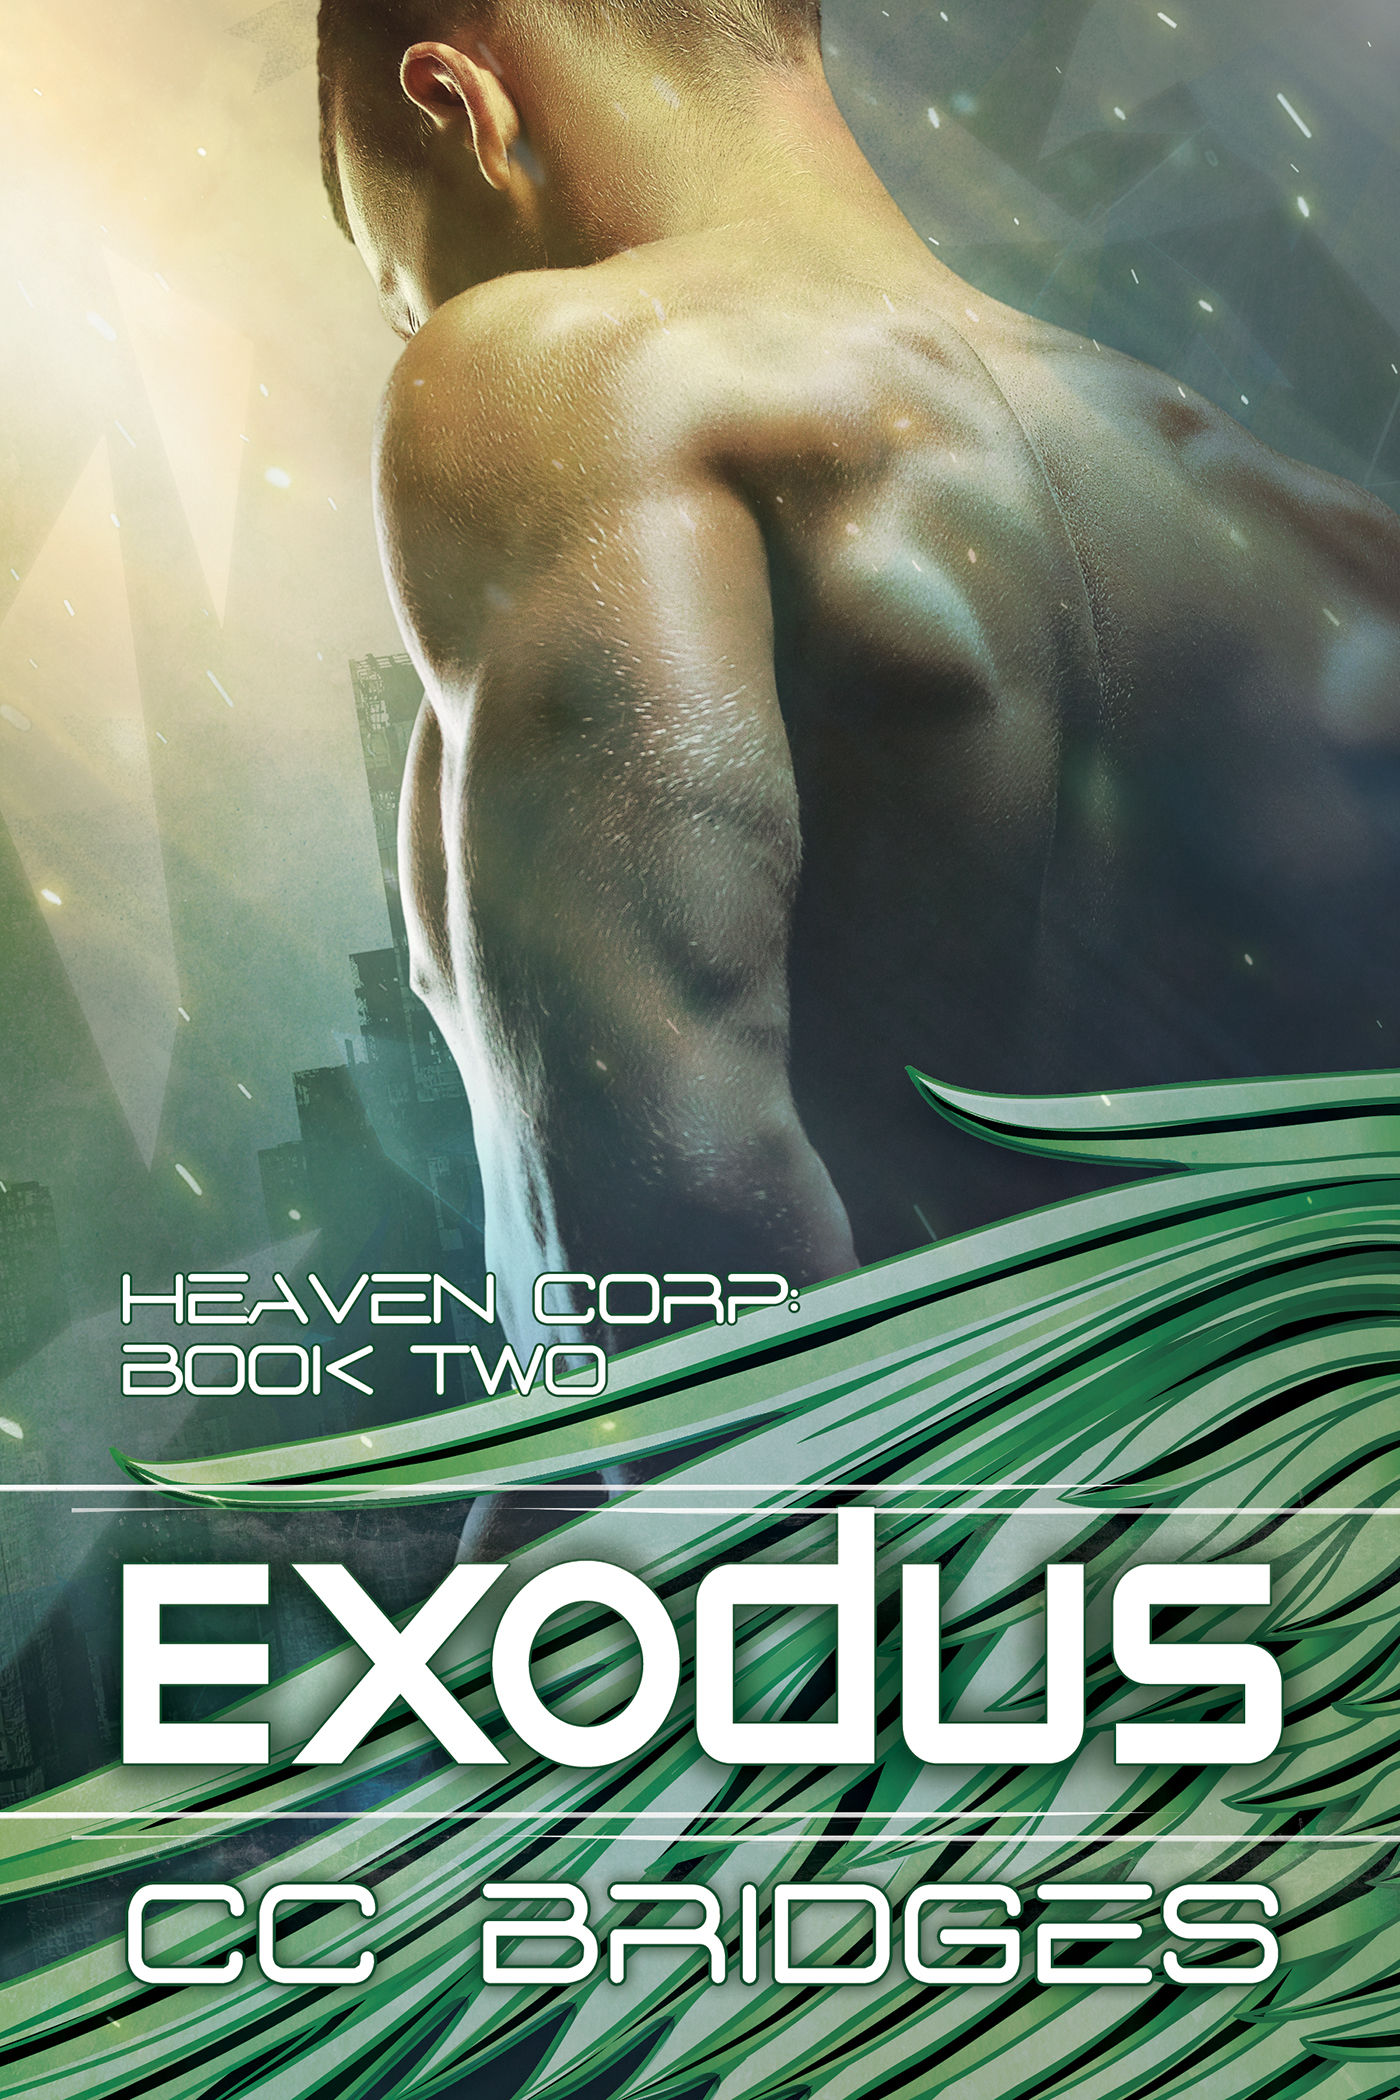 Review: Exodus by C.C. Bridges